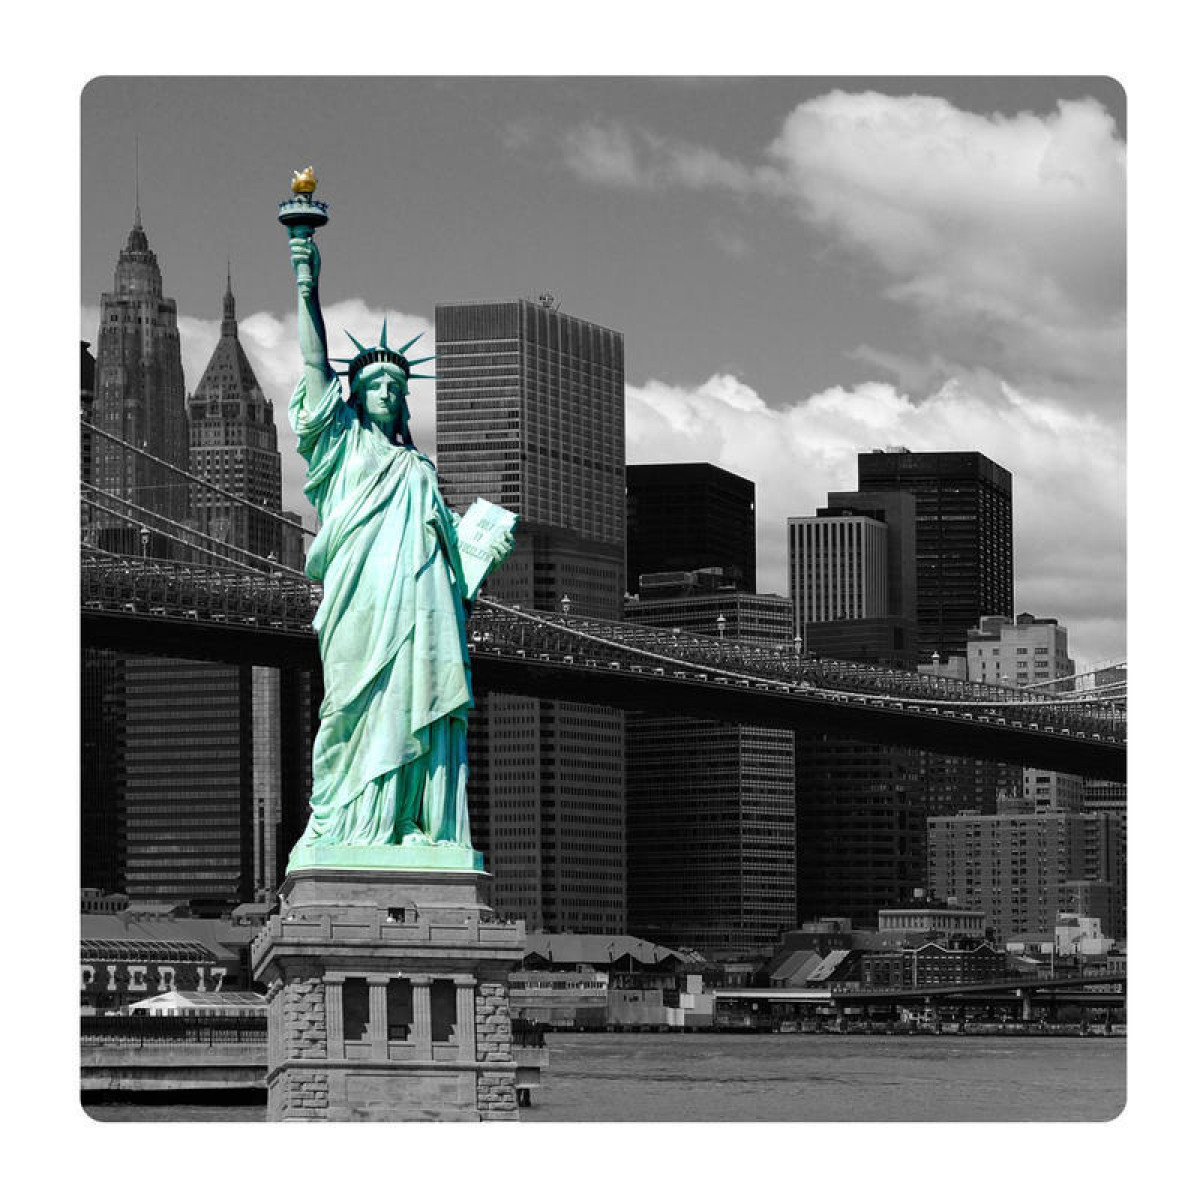 Statue of Liberty, Photo pour accrocher au mur faite en plexiglass 29 x 29 cm